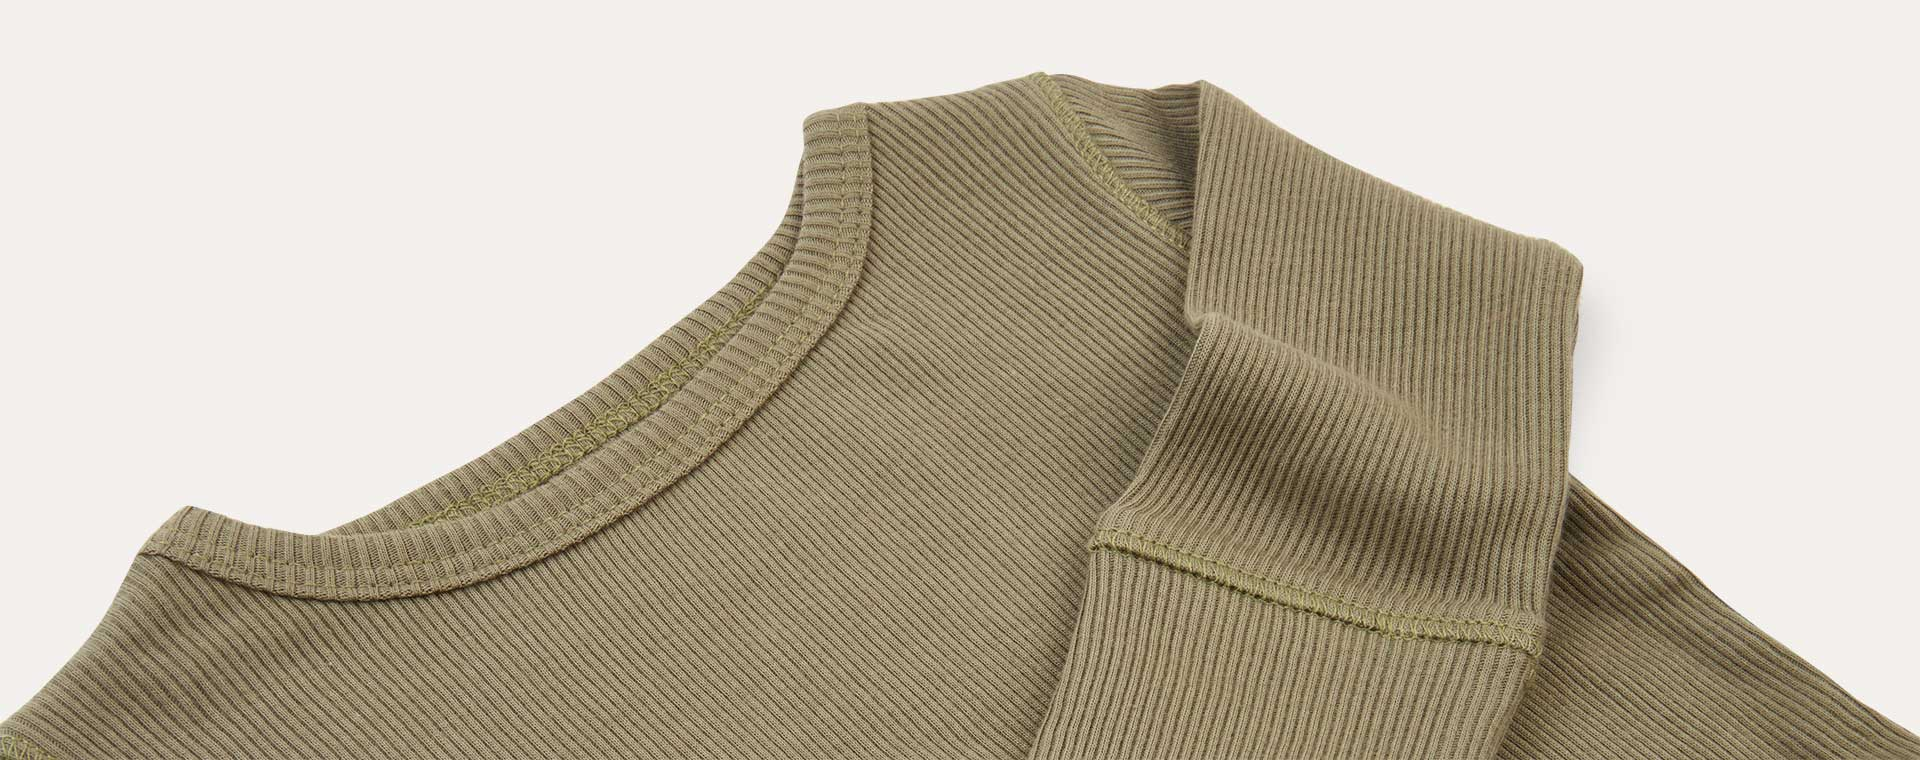 Khaki KIDLY Label Ribbed Long Sleeve Tee